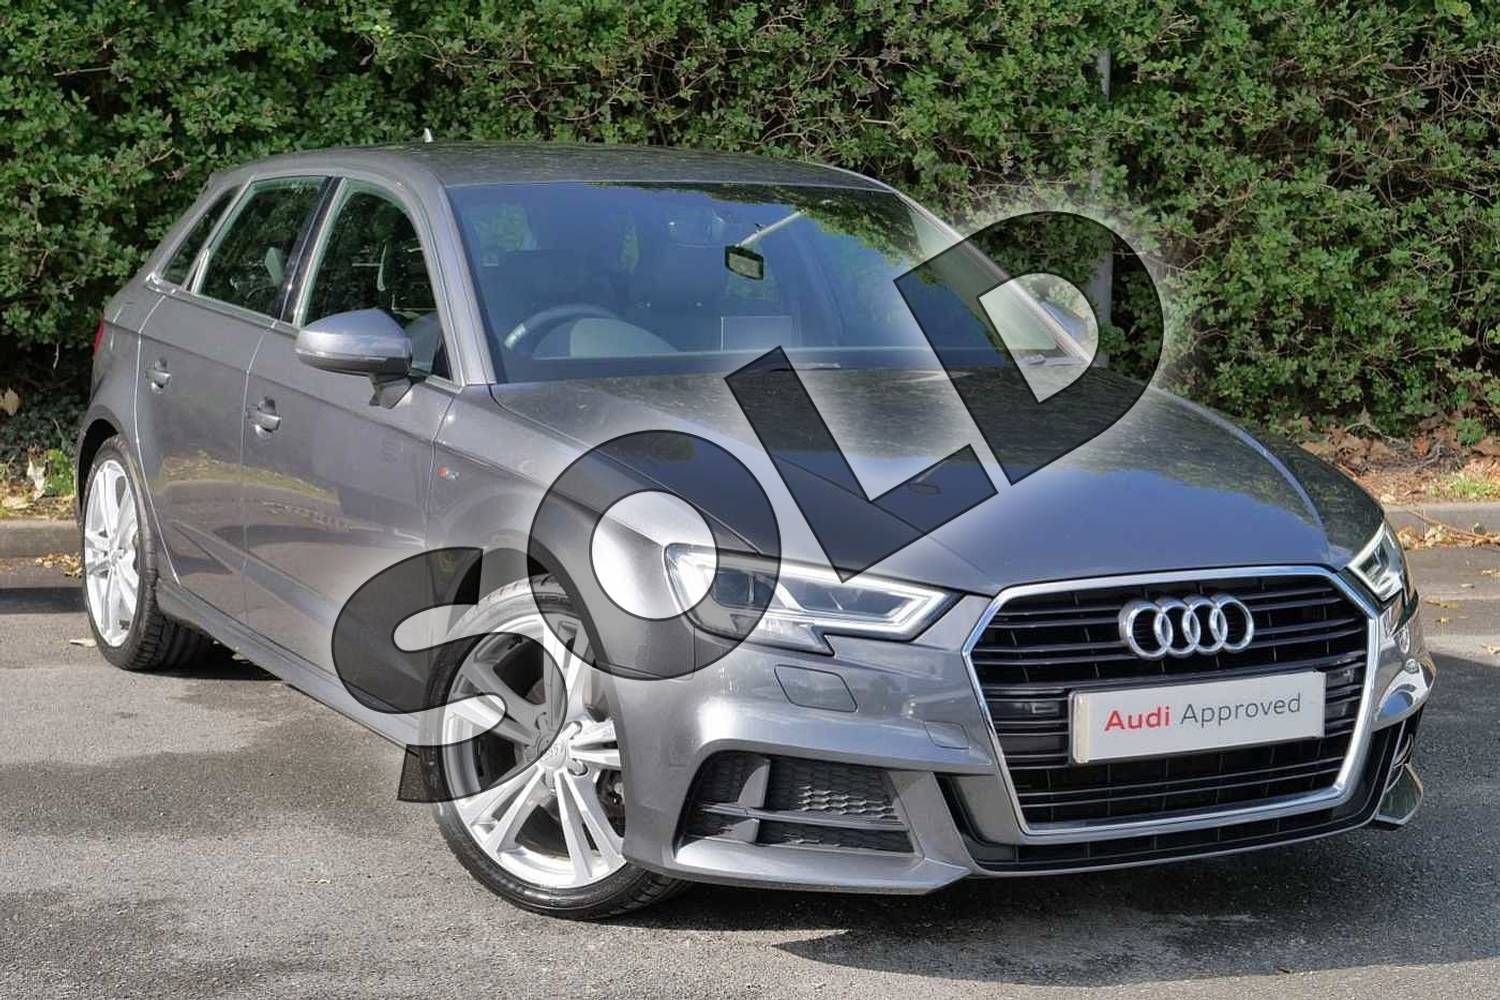 Audi A3 Sportback 1 5 Tfsi S Line 5dr S Tronic Daytona Grey Pearlescent With Black Rock Gray Interior